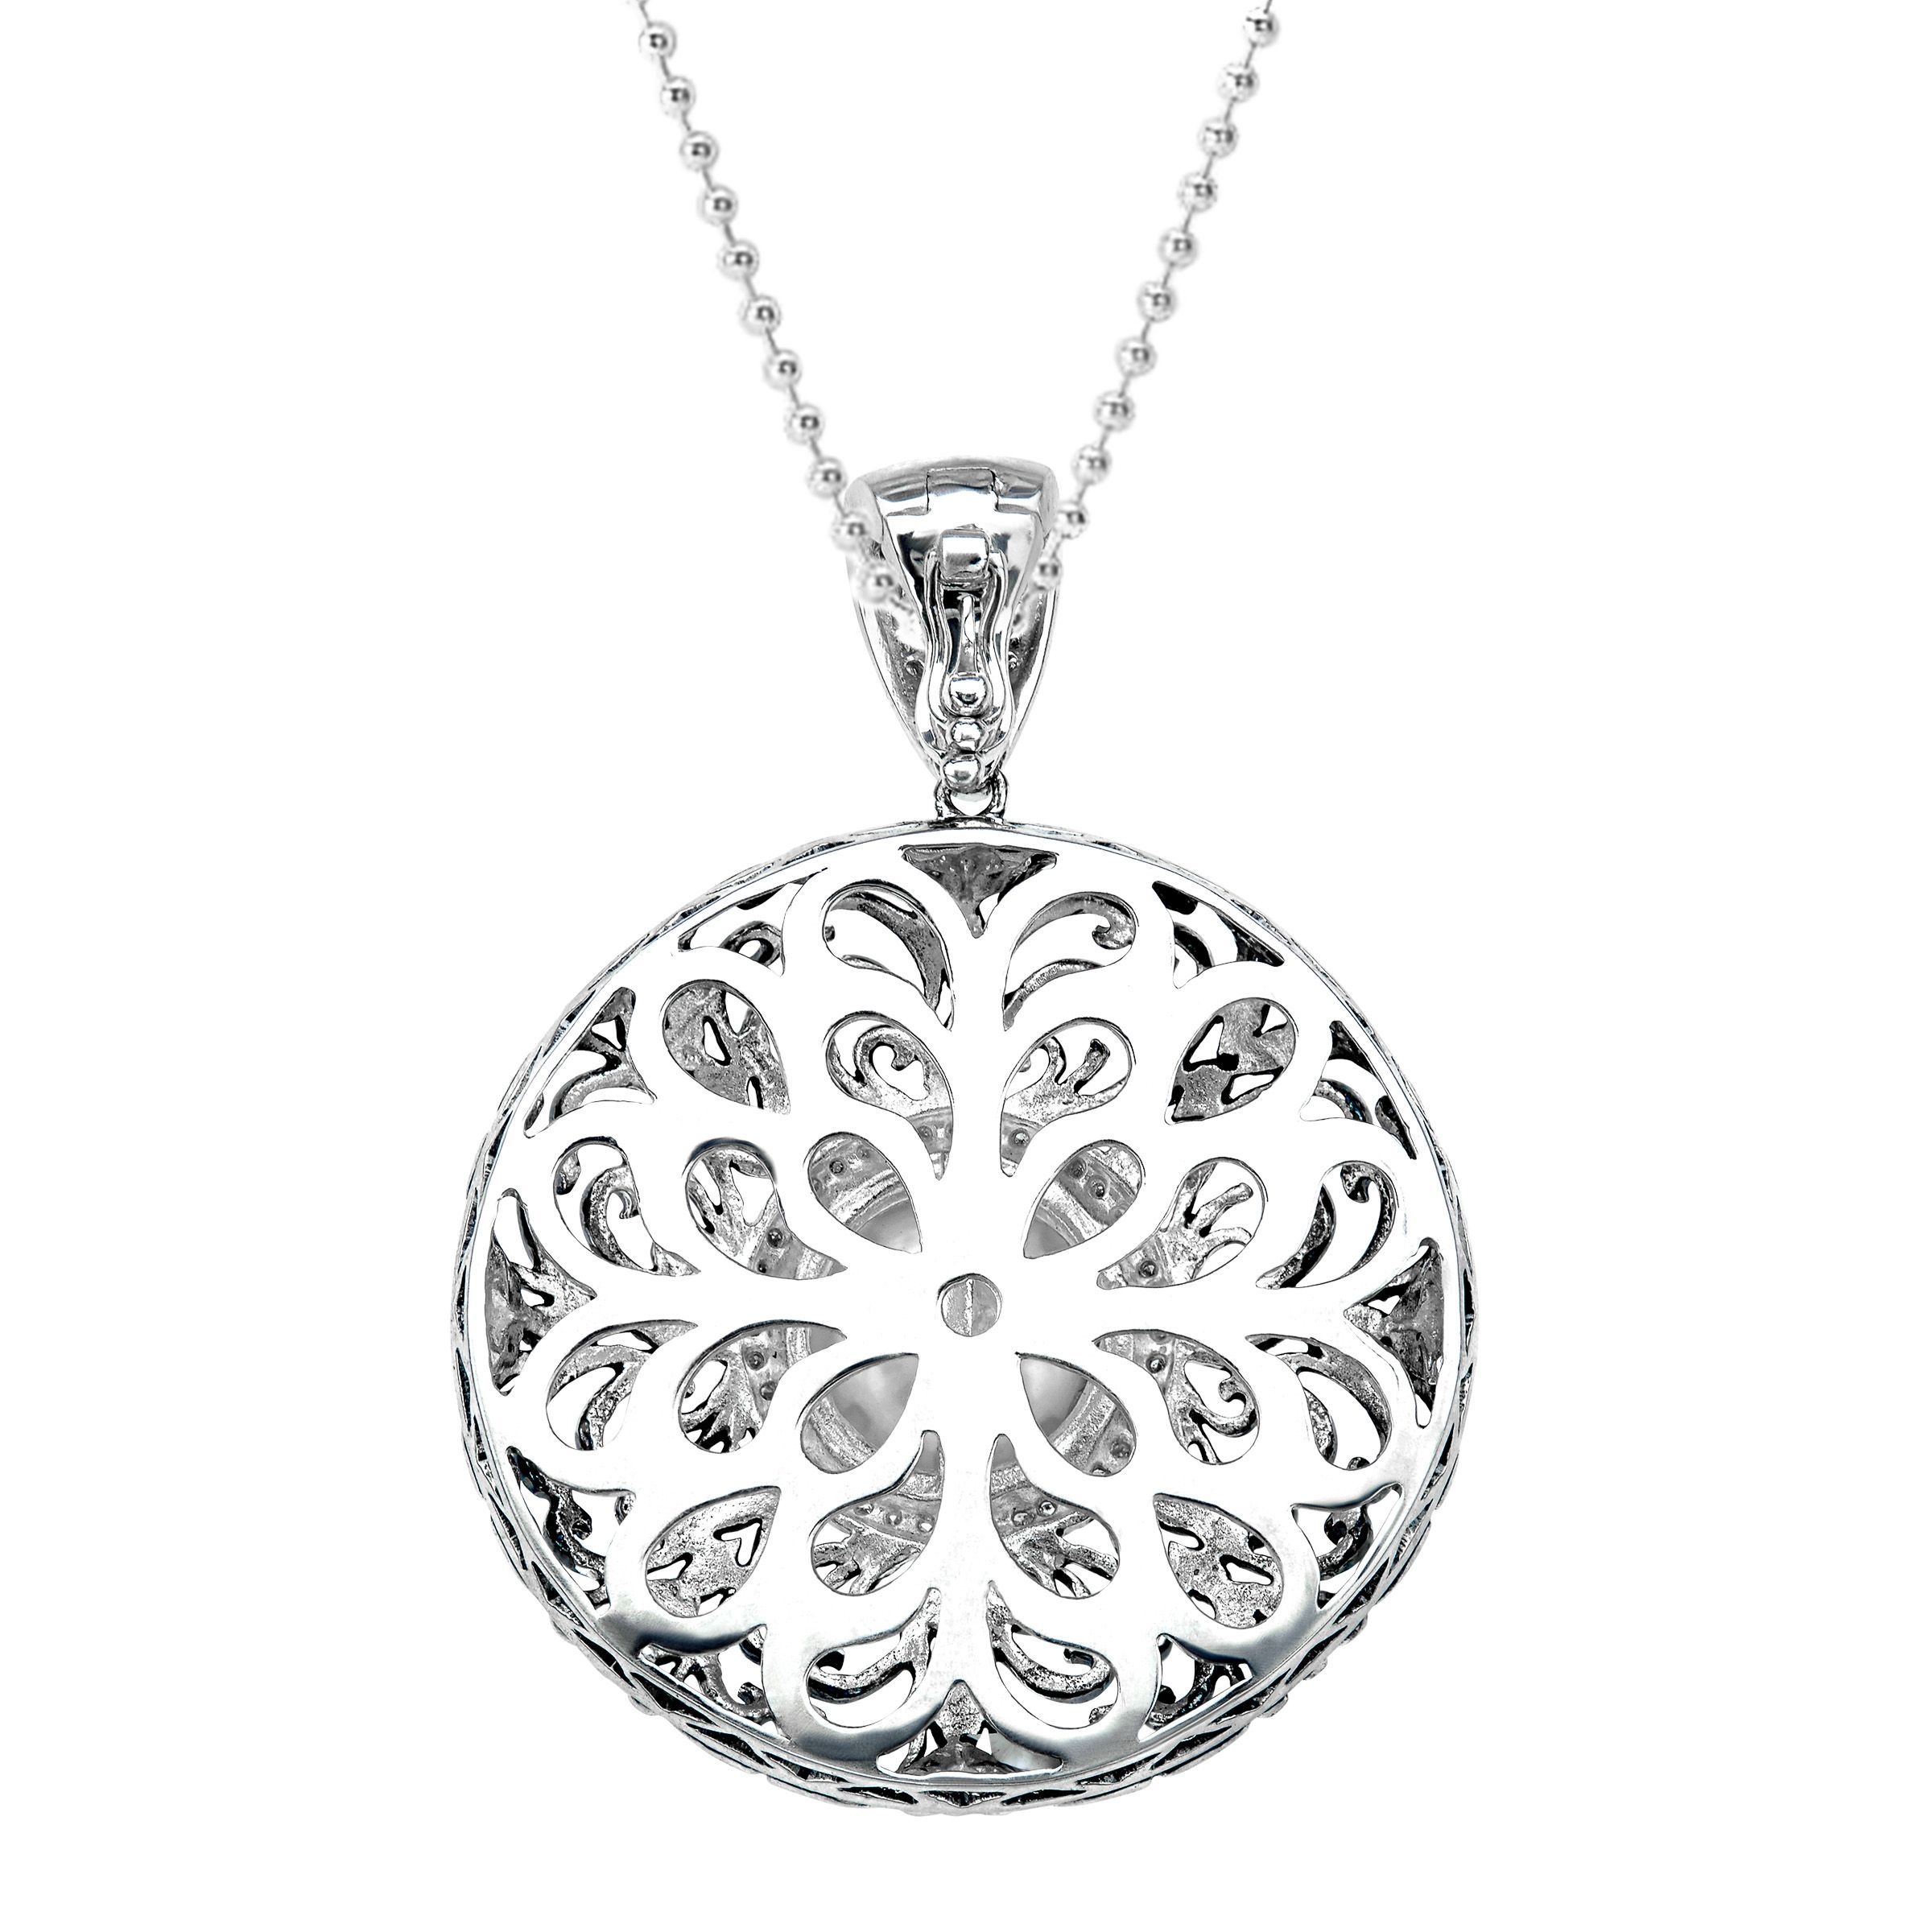 true necklace index madamlili english silver medallion dsc dandelion plated pendant